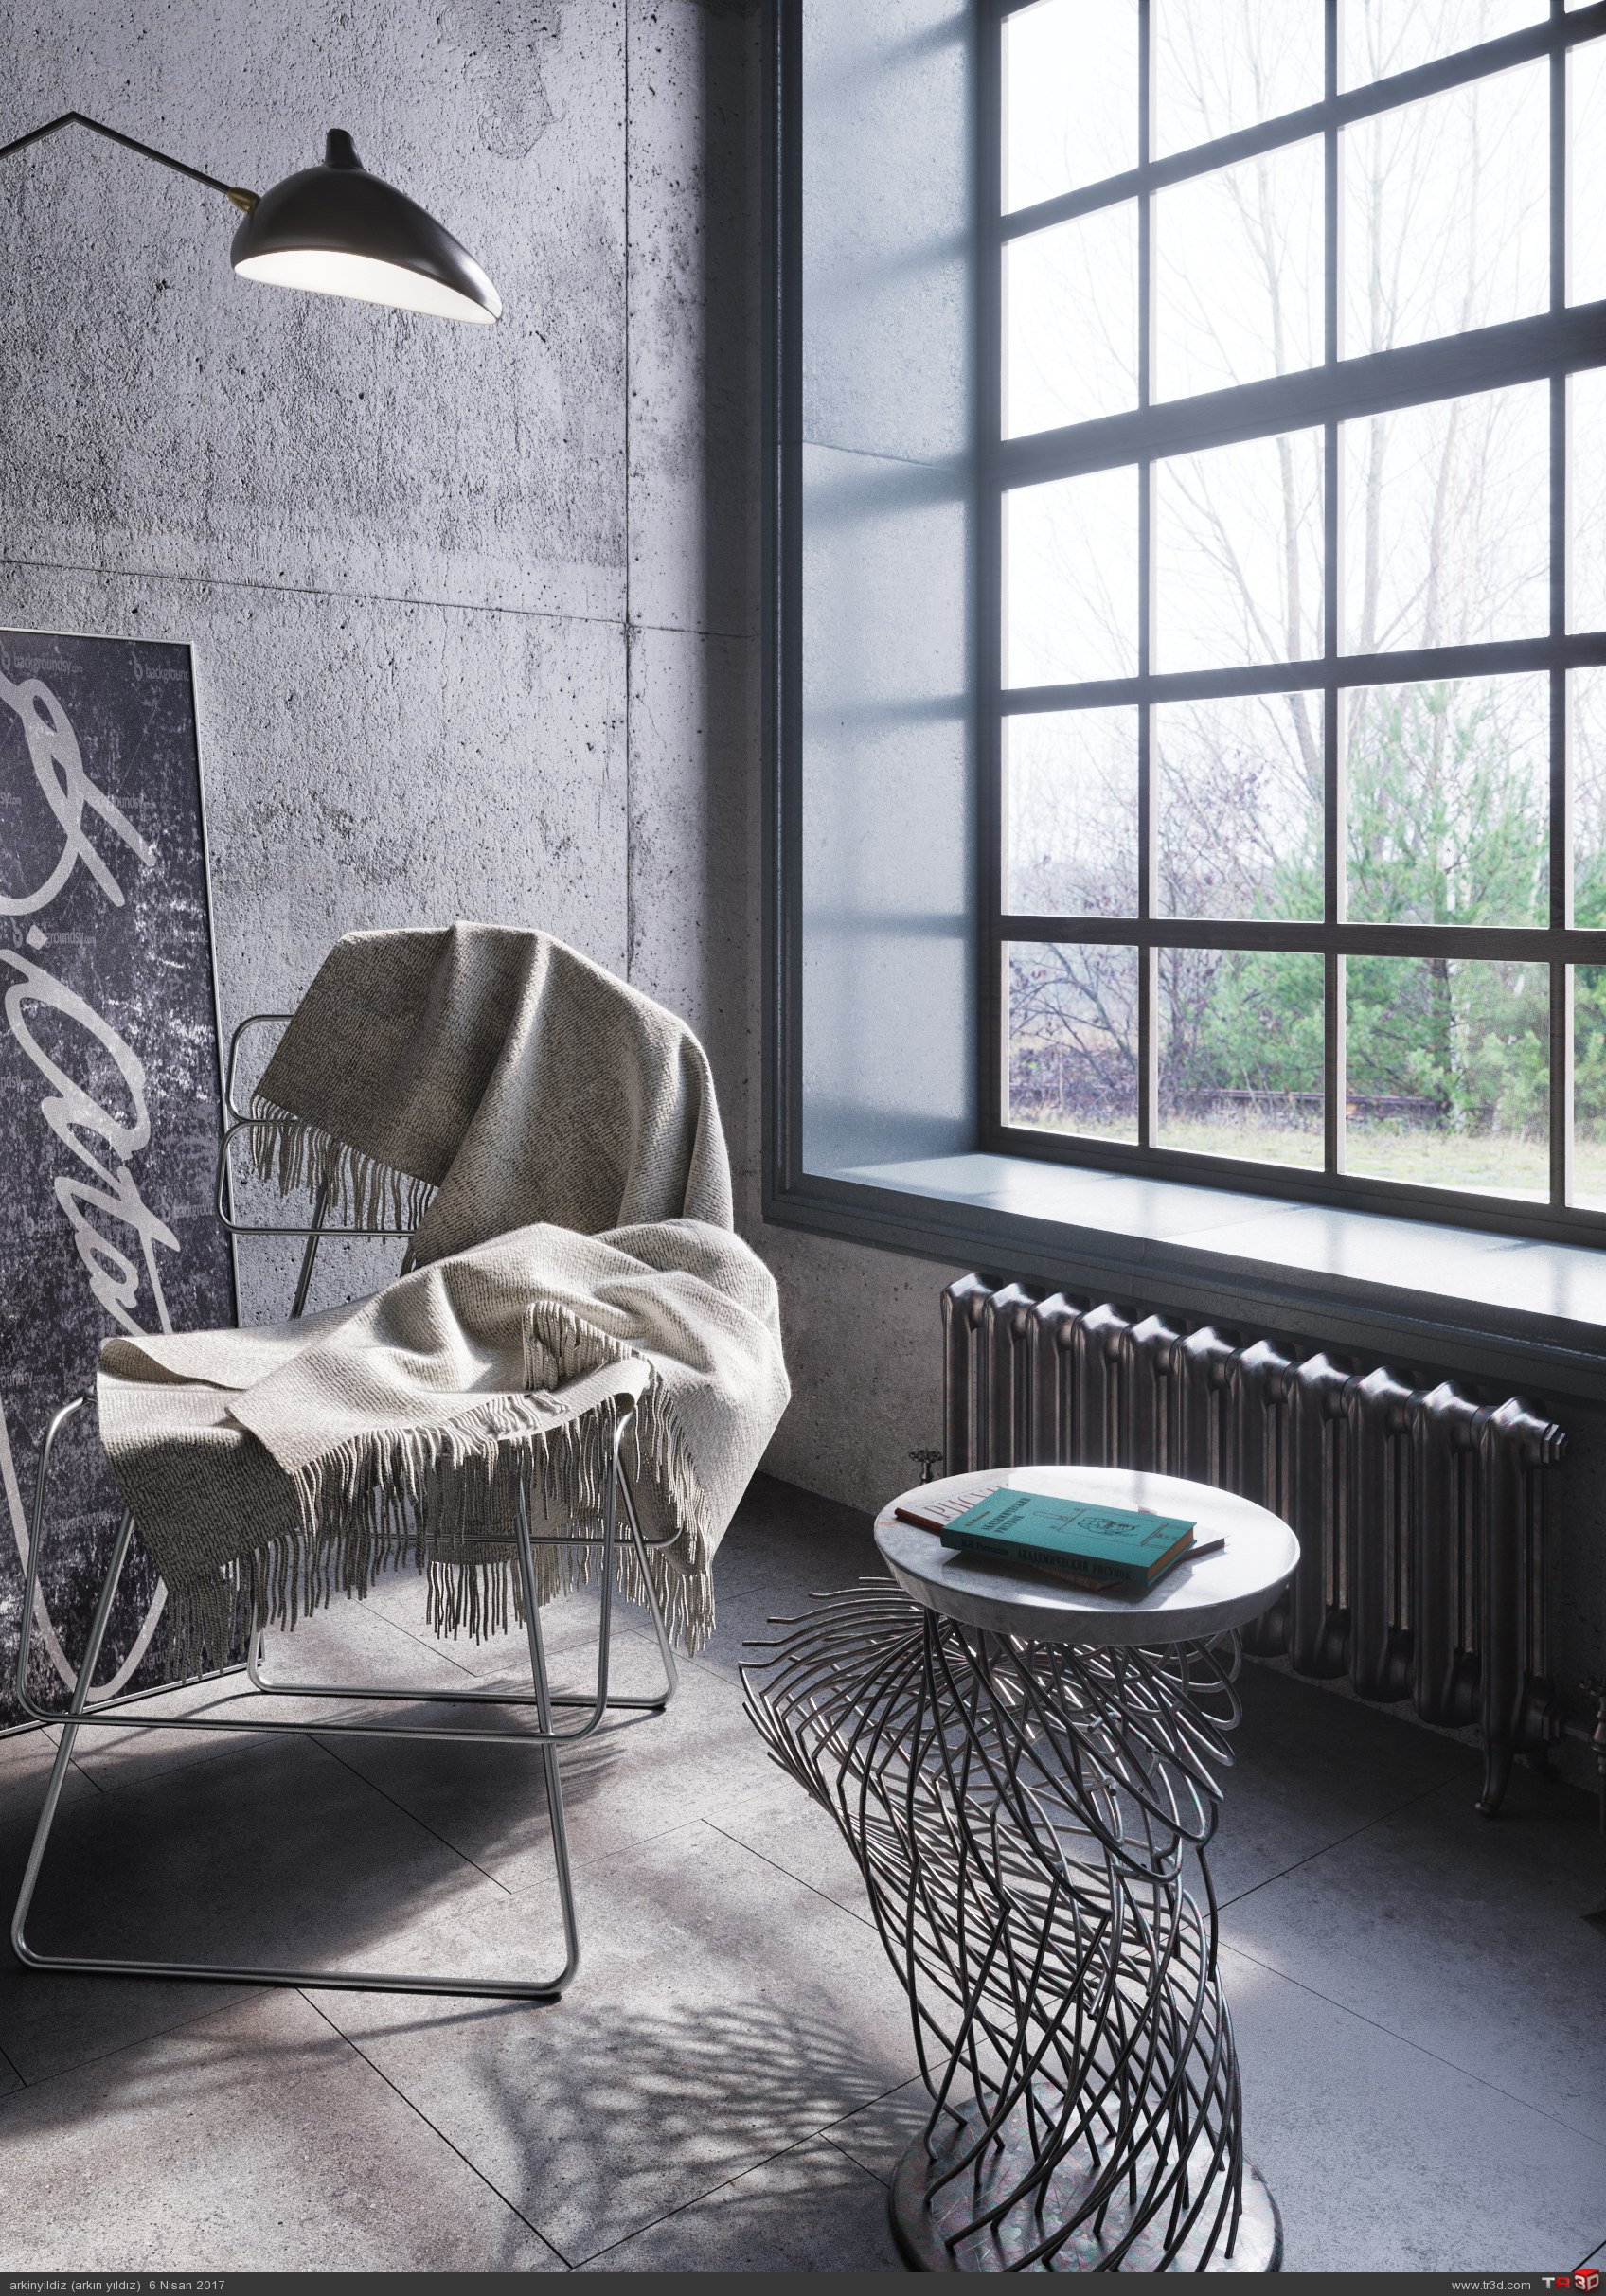 İnterior Design - Concrete & Metal 1